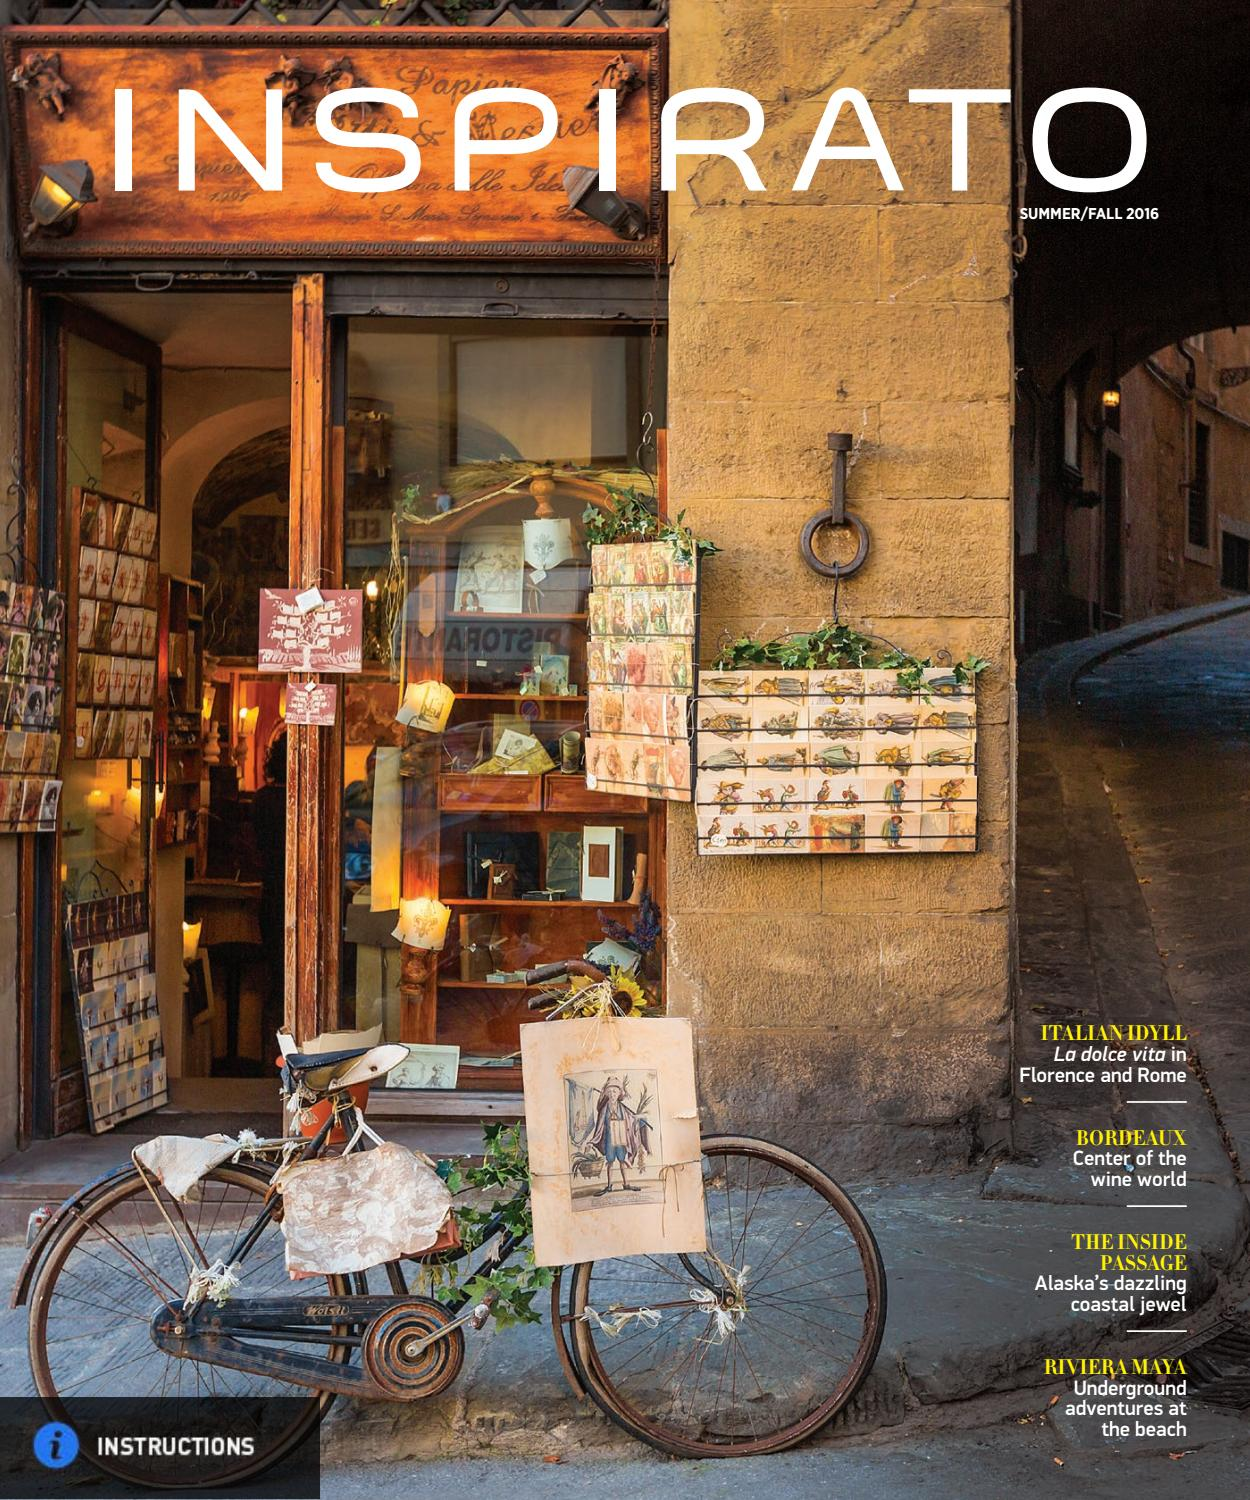 e9ca7f7413e4 Inspirato Summer Fall 2016 by Inspirato - issuu